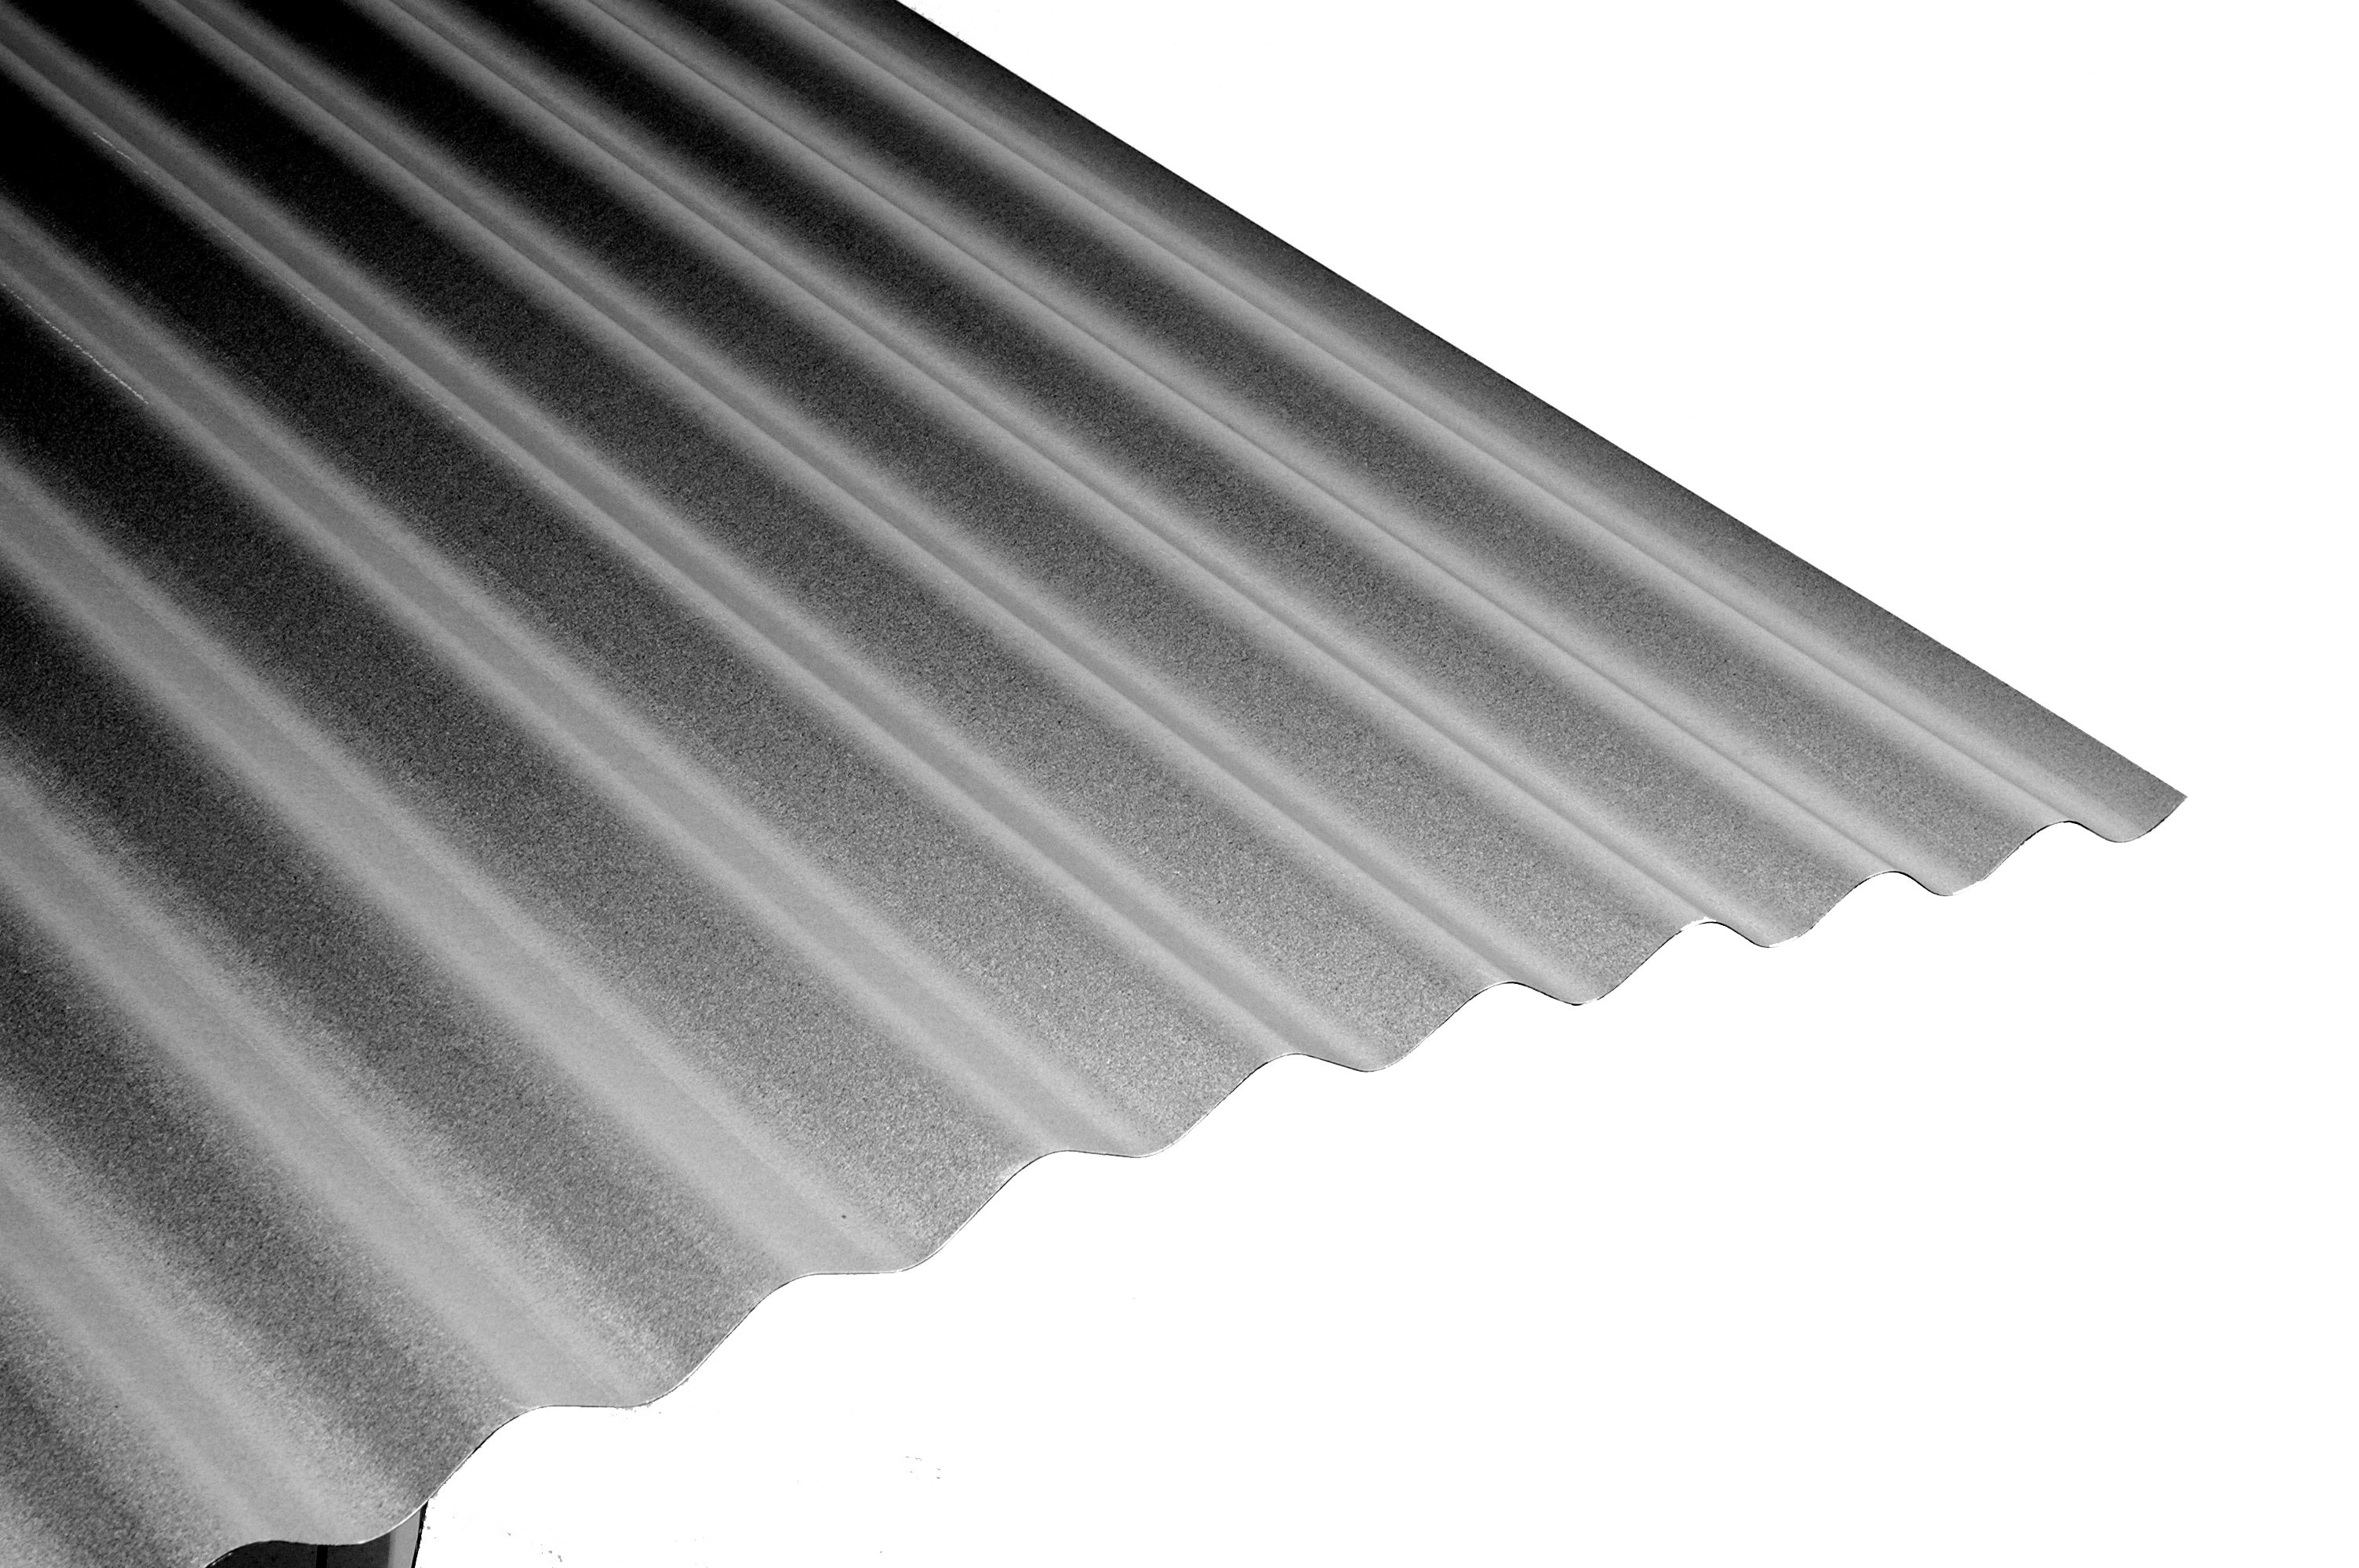 Corrugated Iron Corrugated Iron Roof